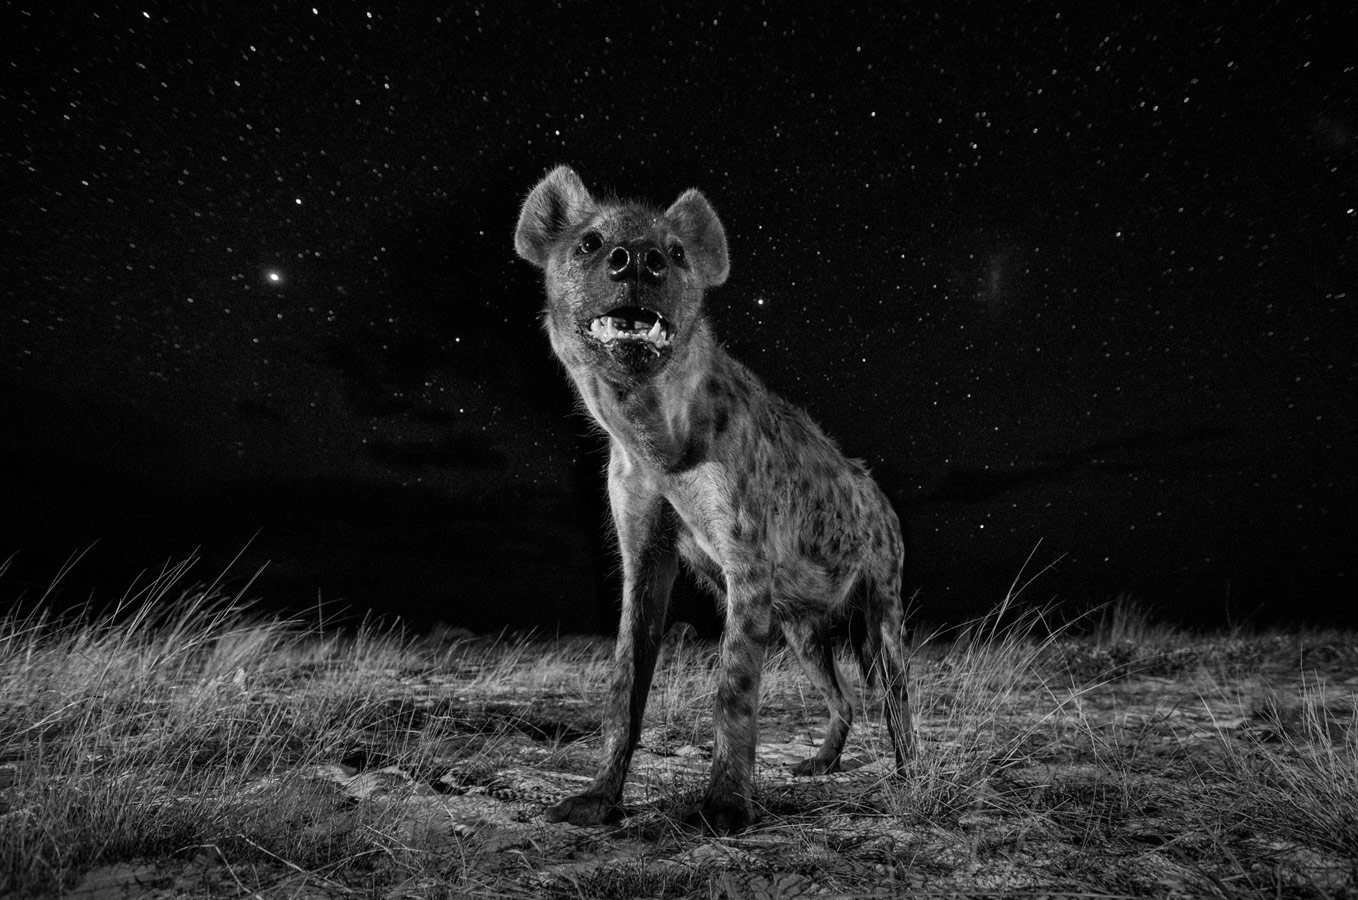 Will Burrard-Lucas, UK, Category Professional, Natural World, Sony World Photography Awards